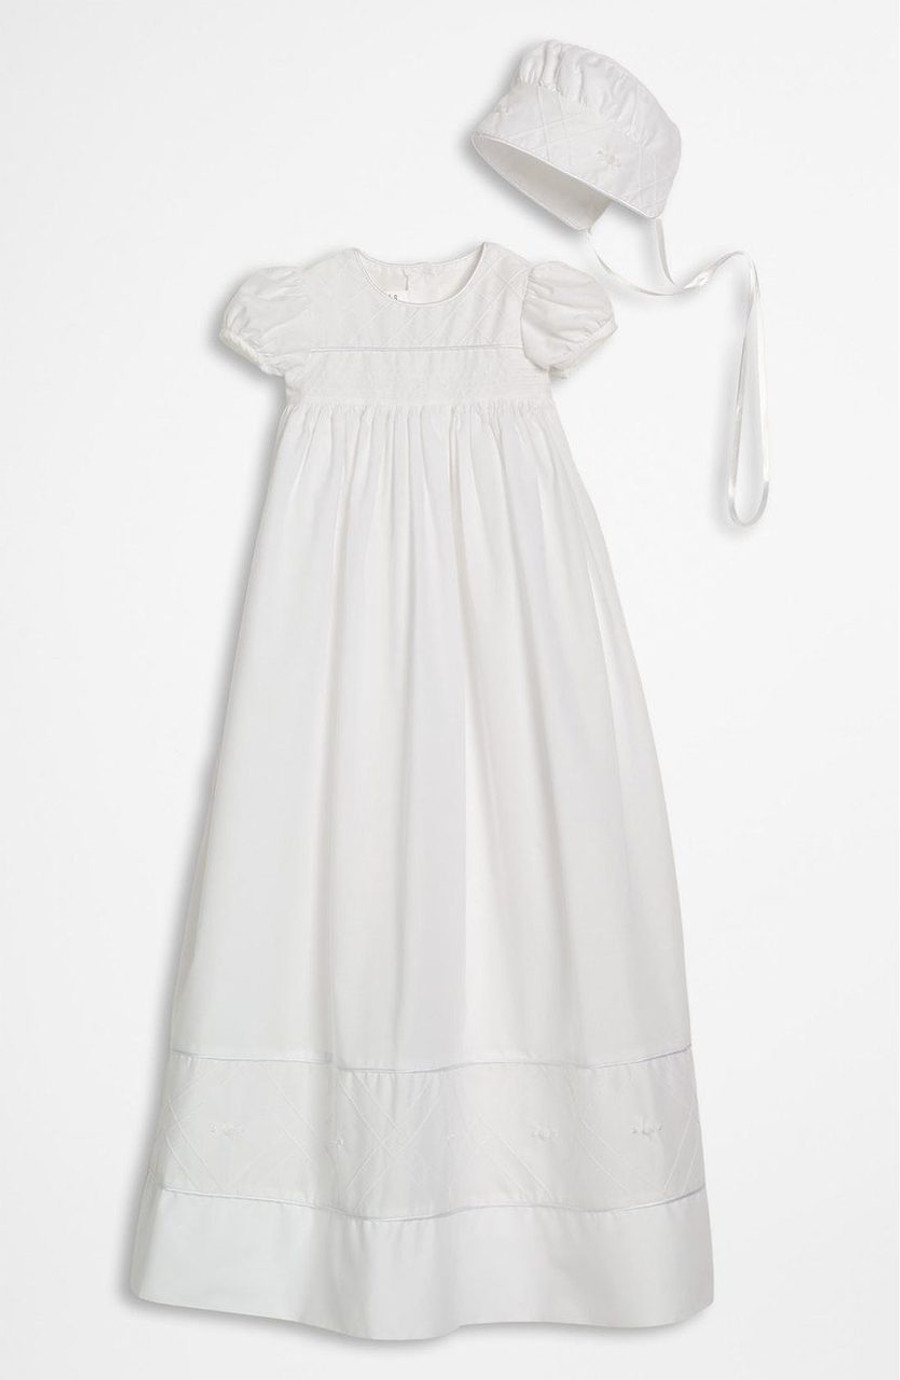 Christening Gown Baptism Gown with Hand Embroidery, Girls Cotton Dress 34″